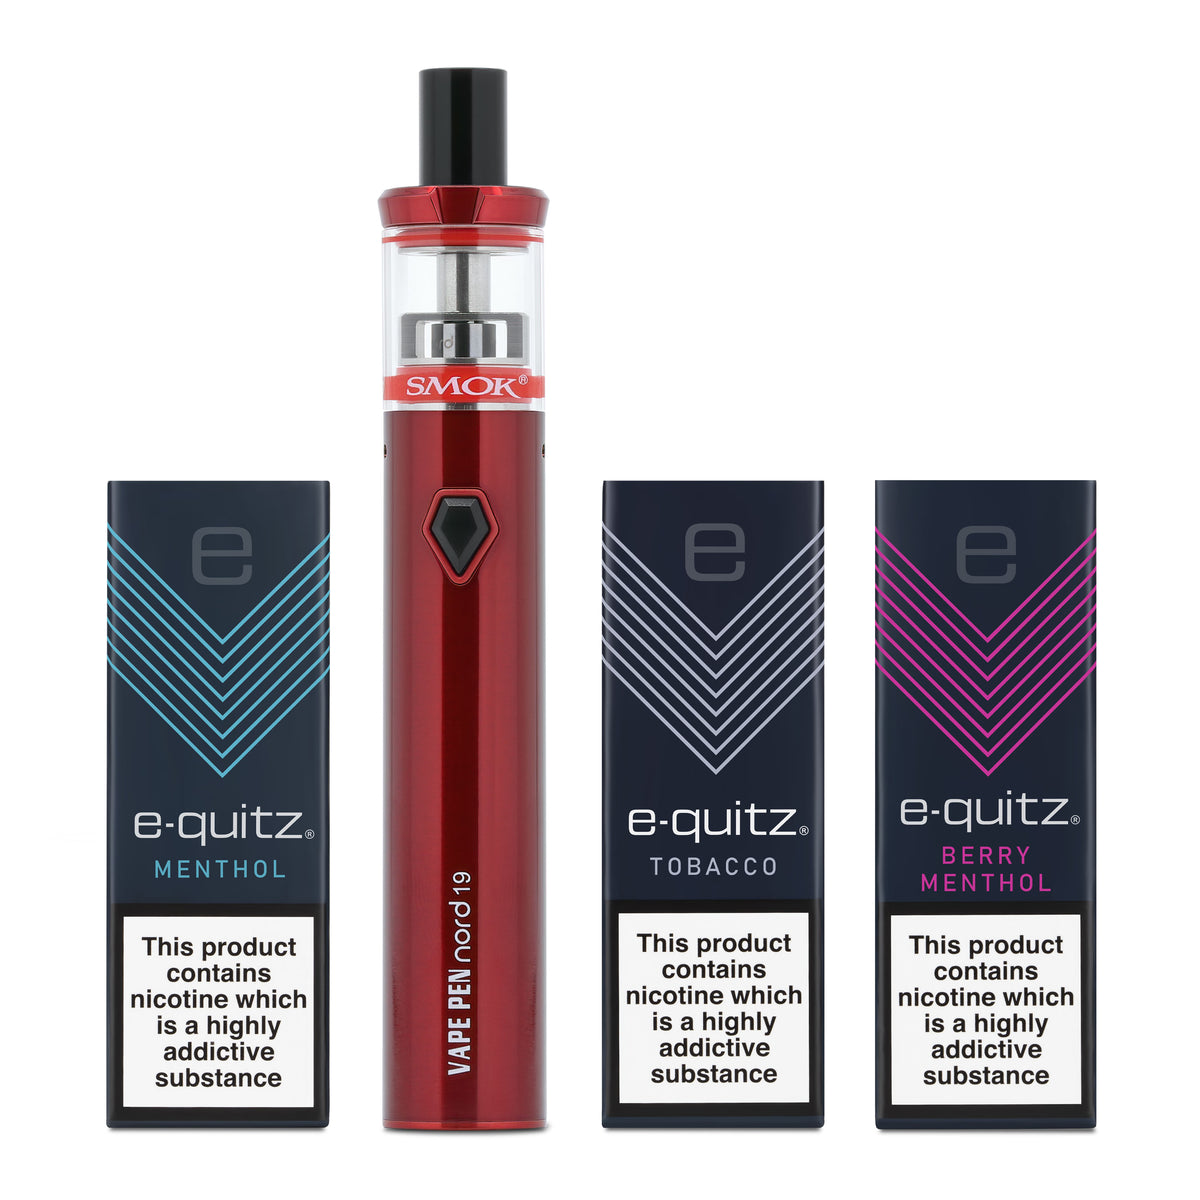 3 free e-liquid and smok vape pen in red